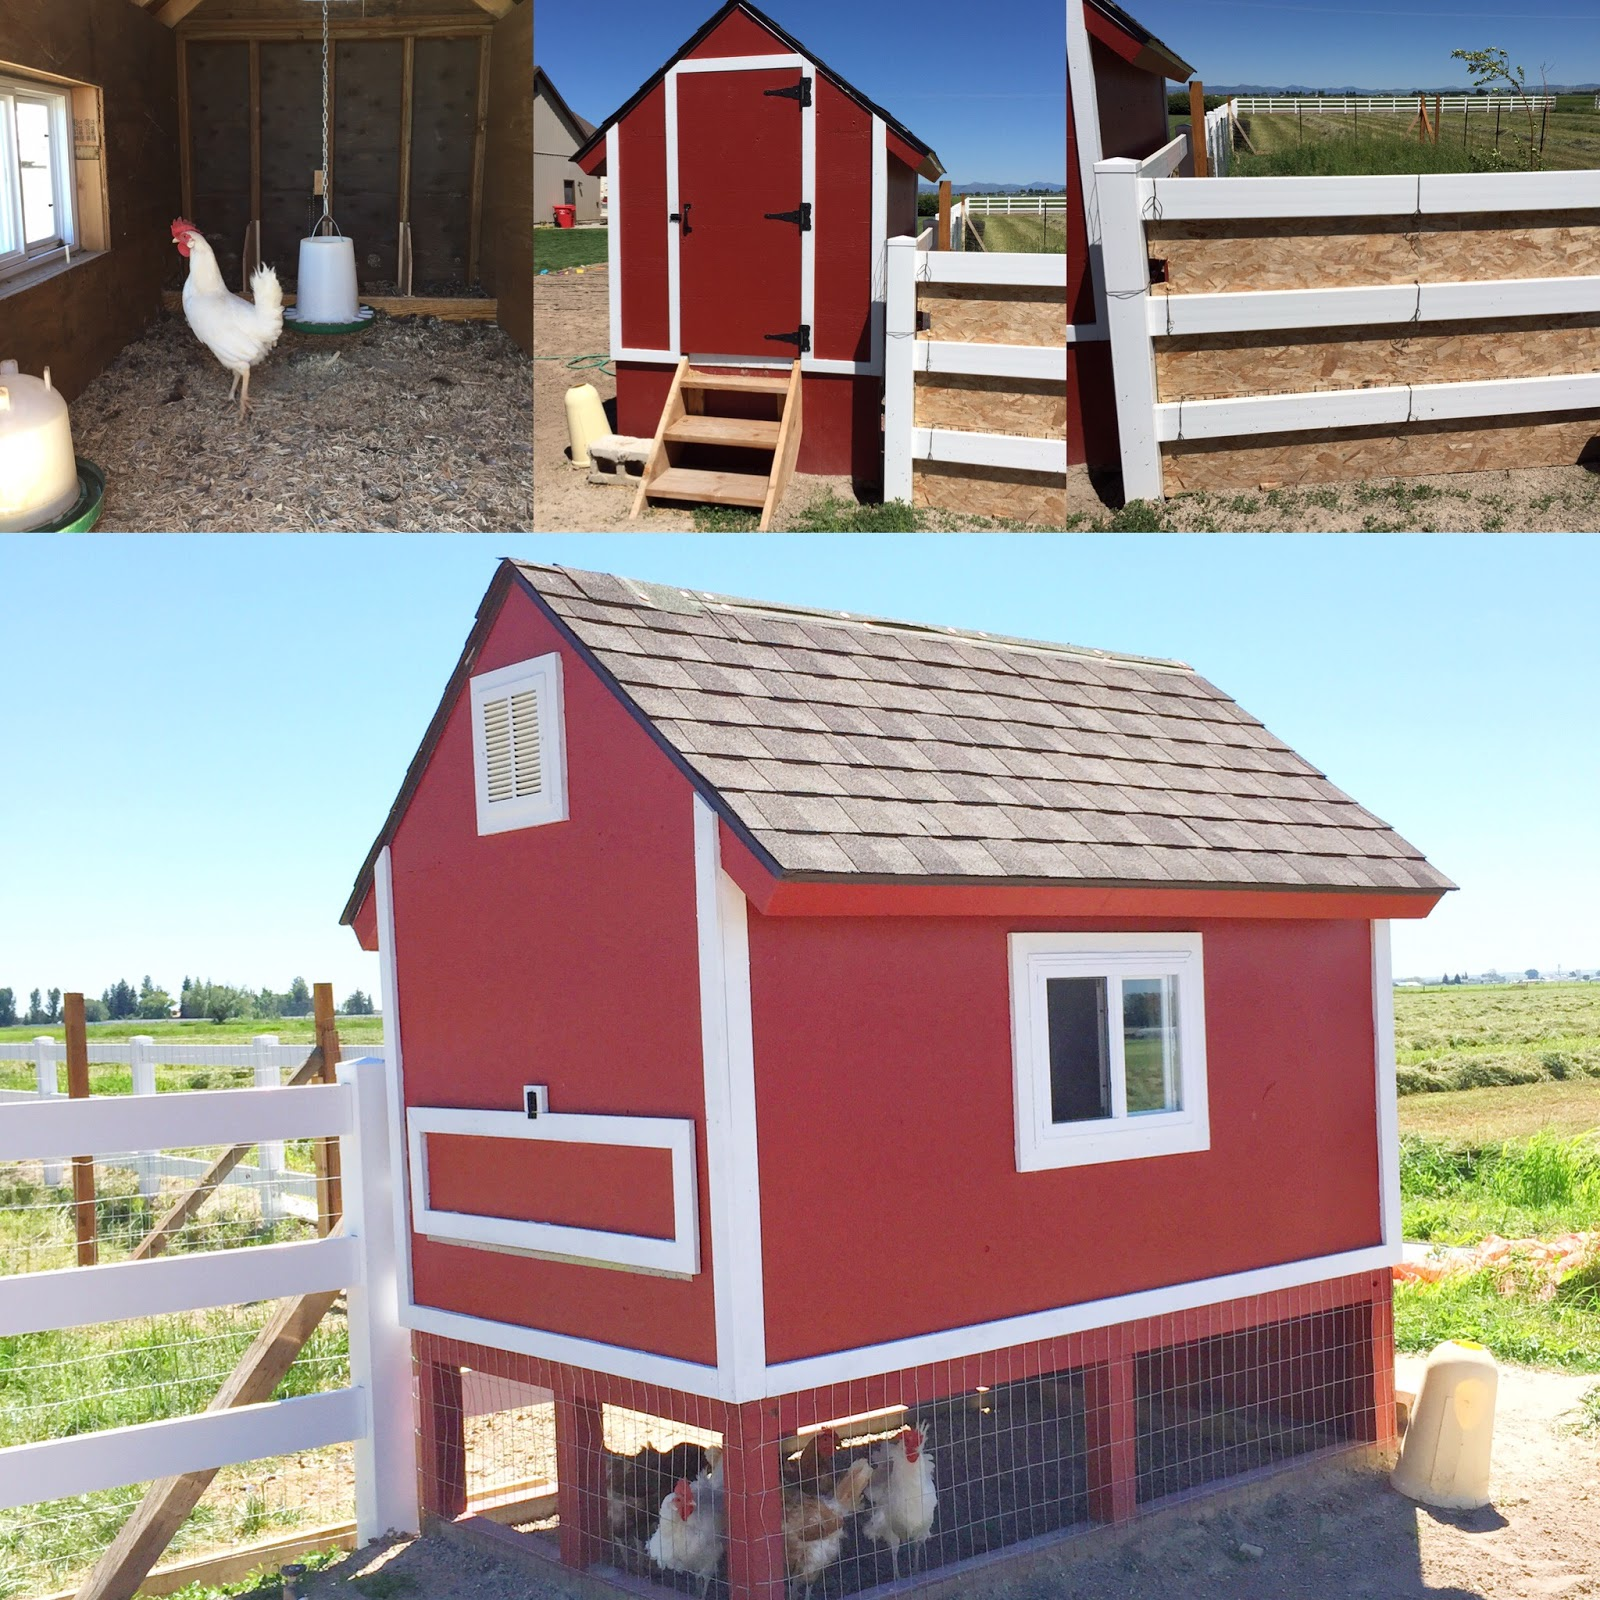 How to Build a Chicken Coop From Pallets | A Vision to Remember All ...